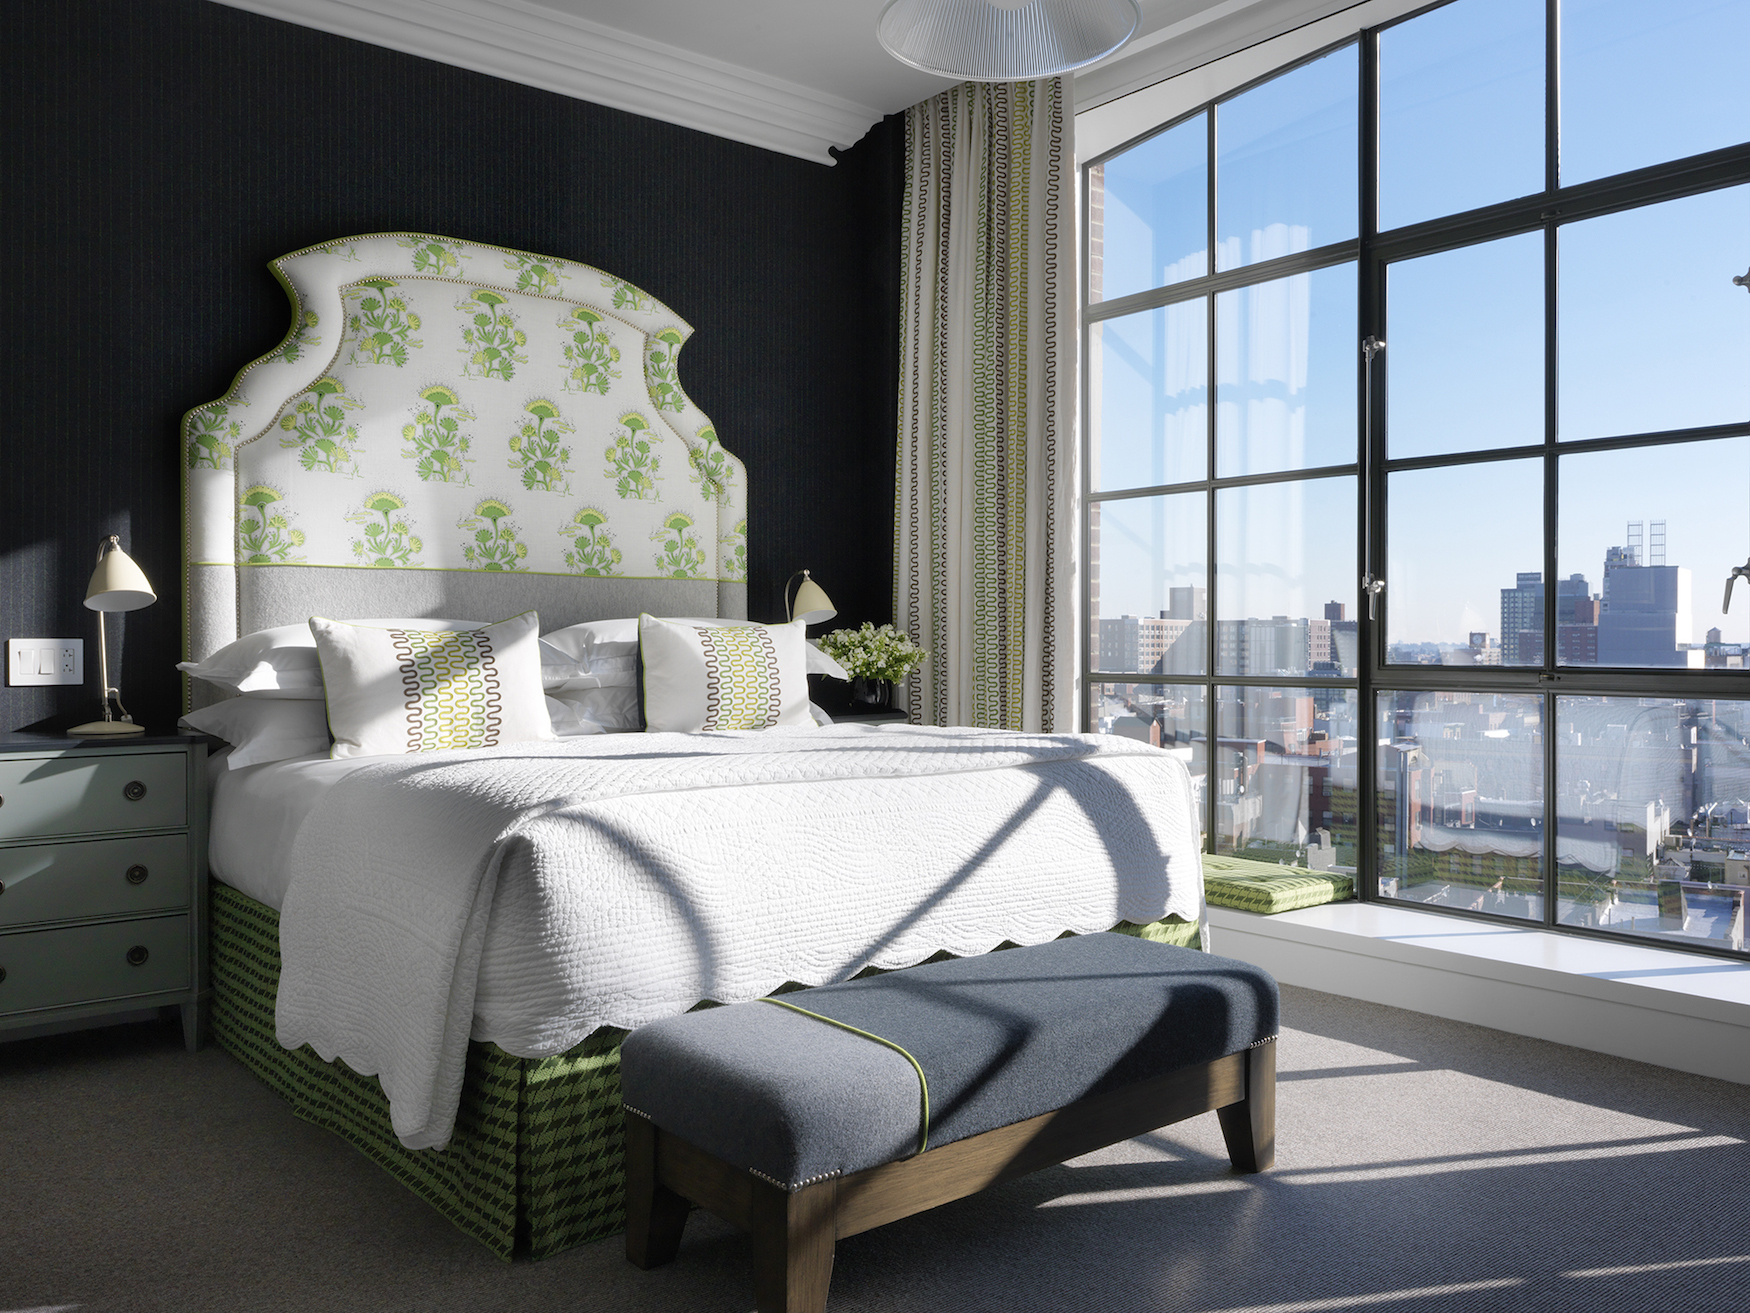 Zimmer im Crosby Street Hotel in New York